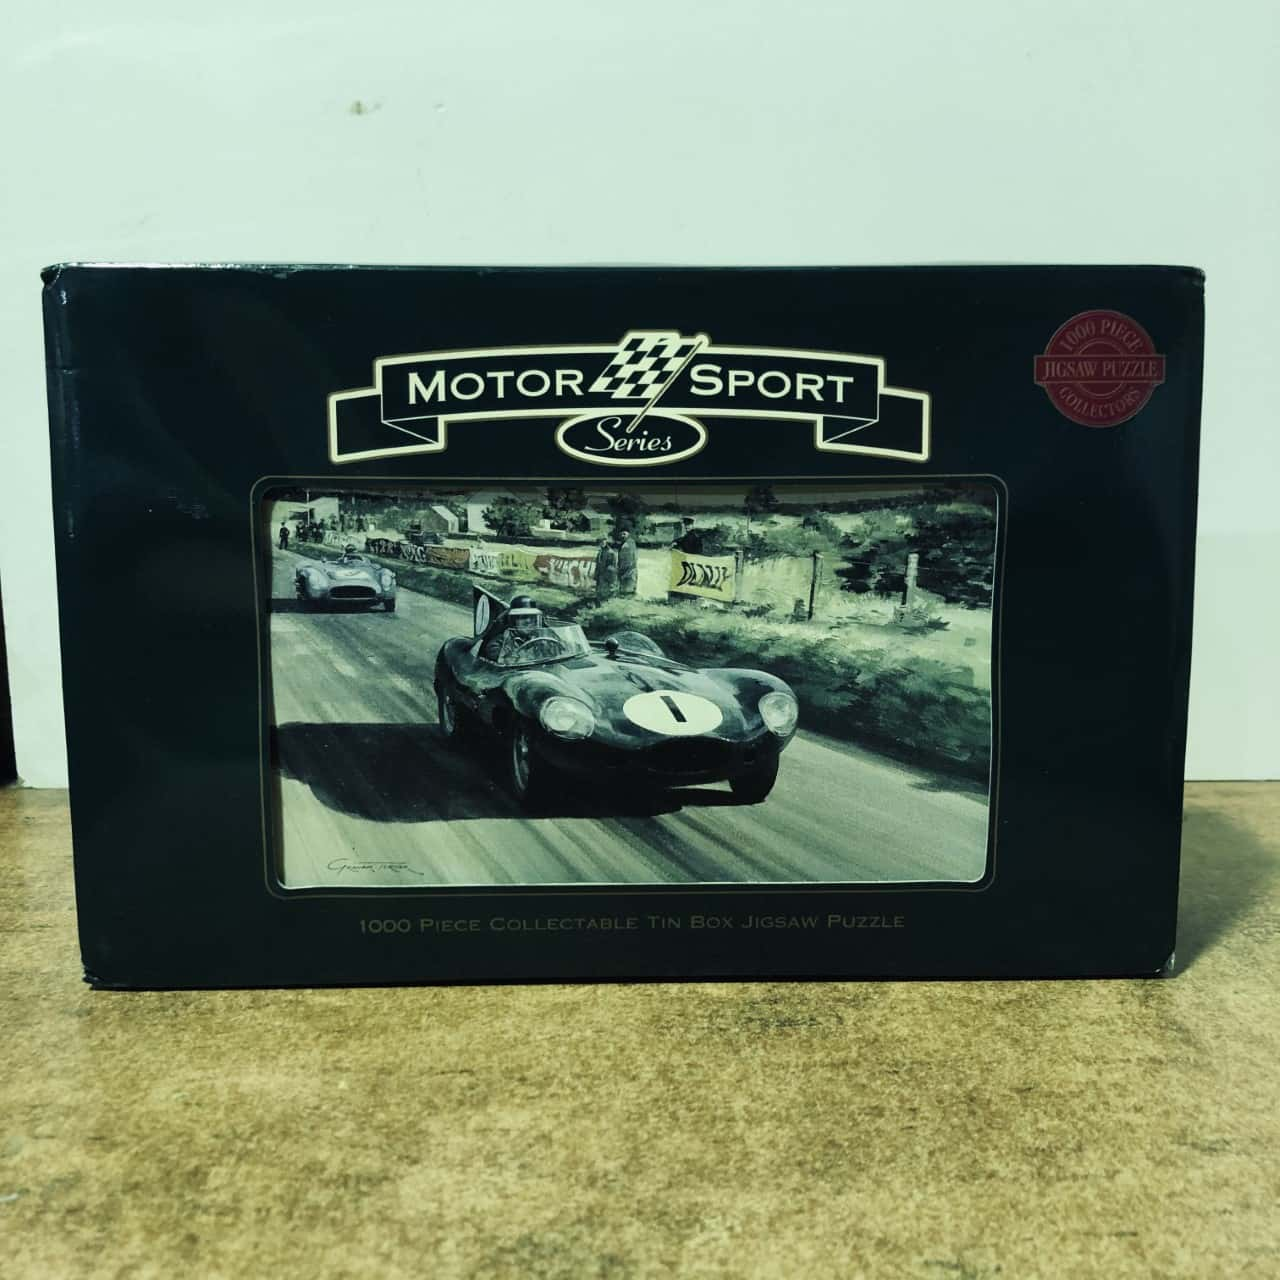 'REDUCED' Motor Sports Jigsaw 1000 Piece Puzzle In Collectible Tin